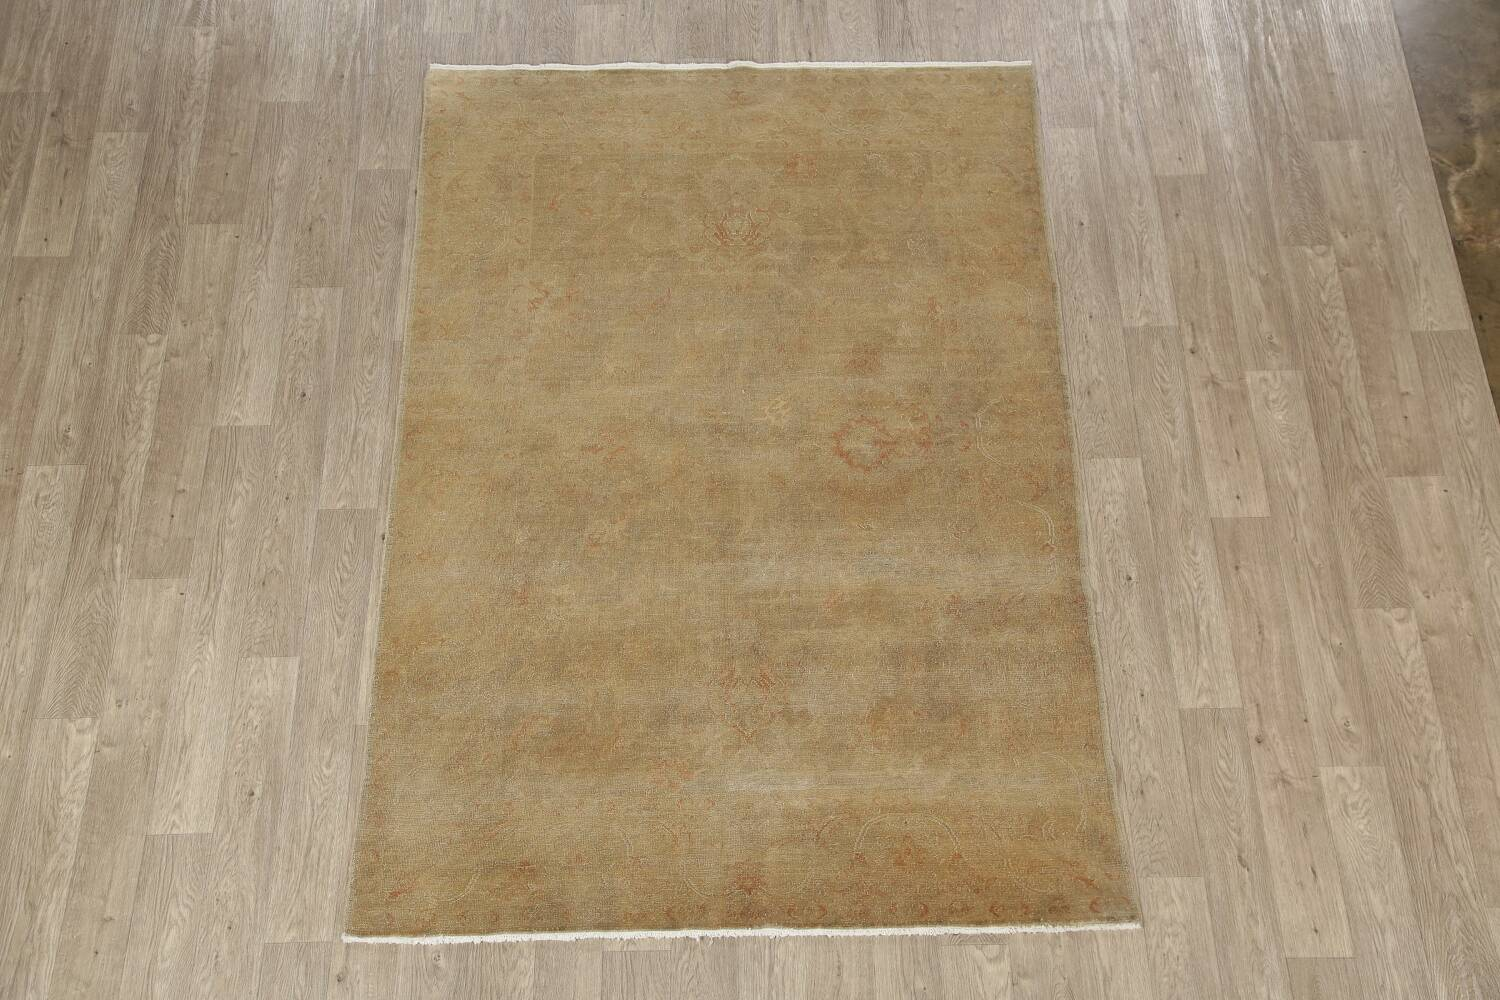 Antique Muted Floral Oushak Turkish Area Rug 6x8 image 2